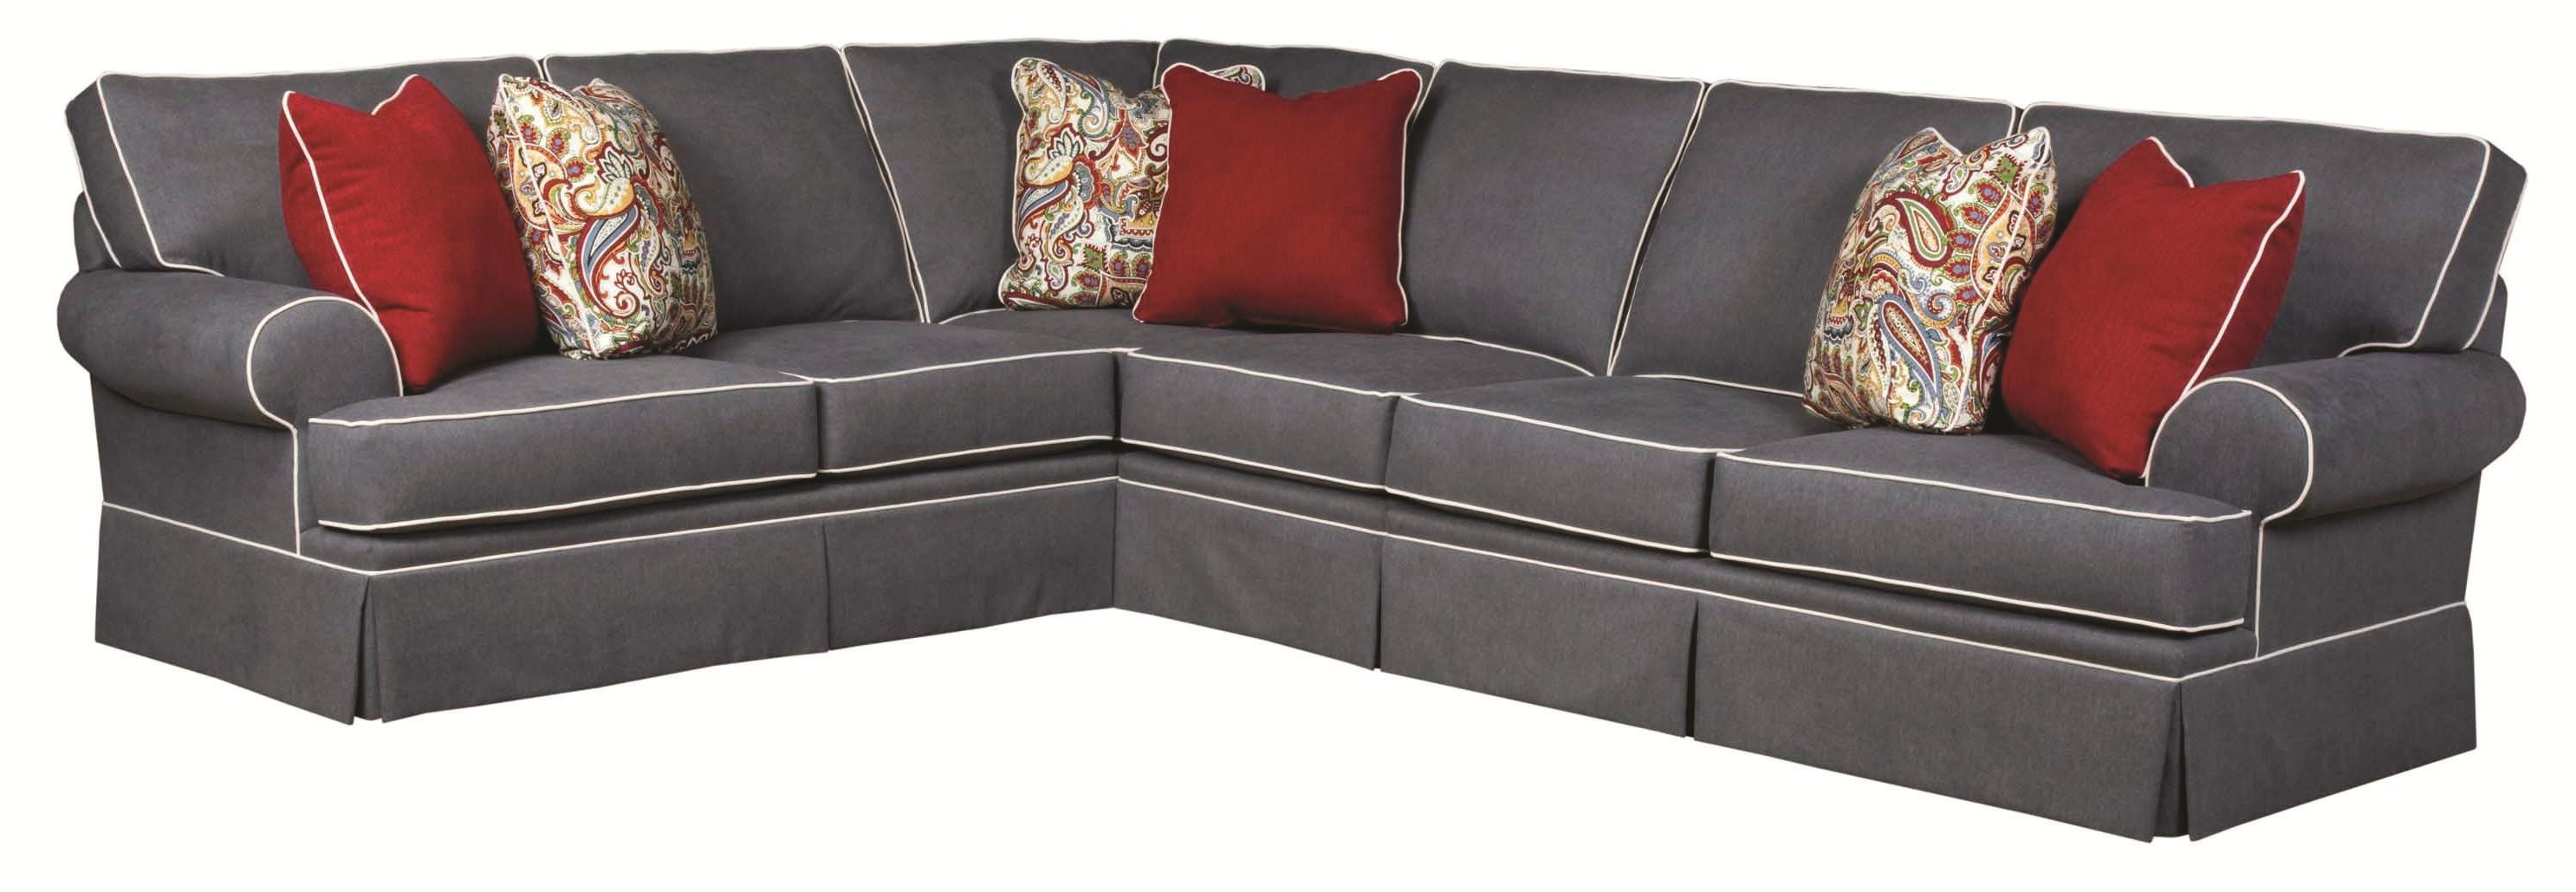 Favorite Broyhill Furniture Emily Traditional 3 Piece Sectional Sofa With Within Duluth Mn Sectional Sofas (View 10 of 20)